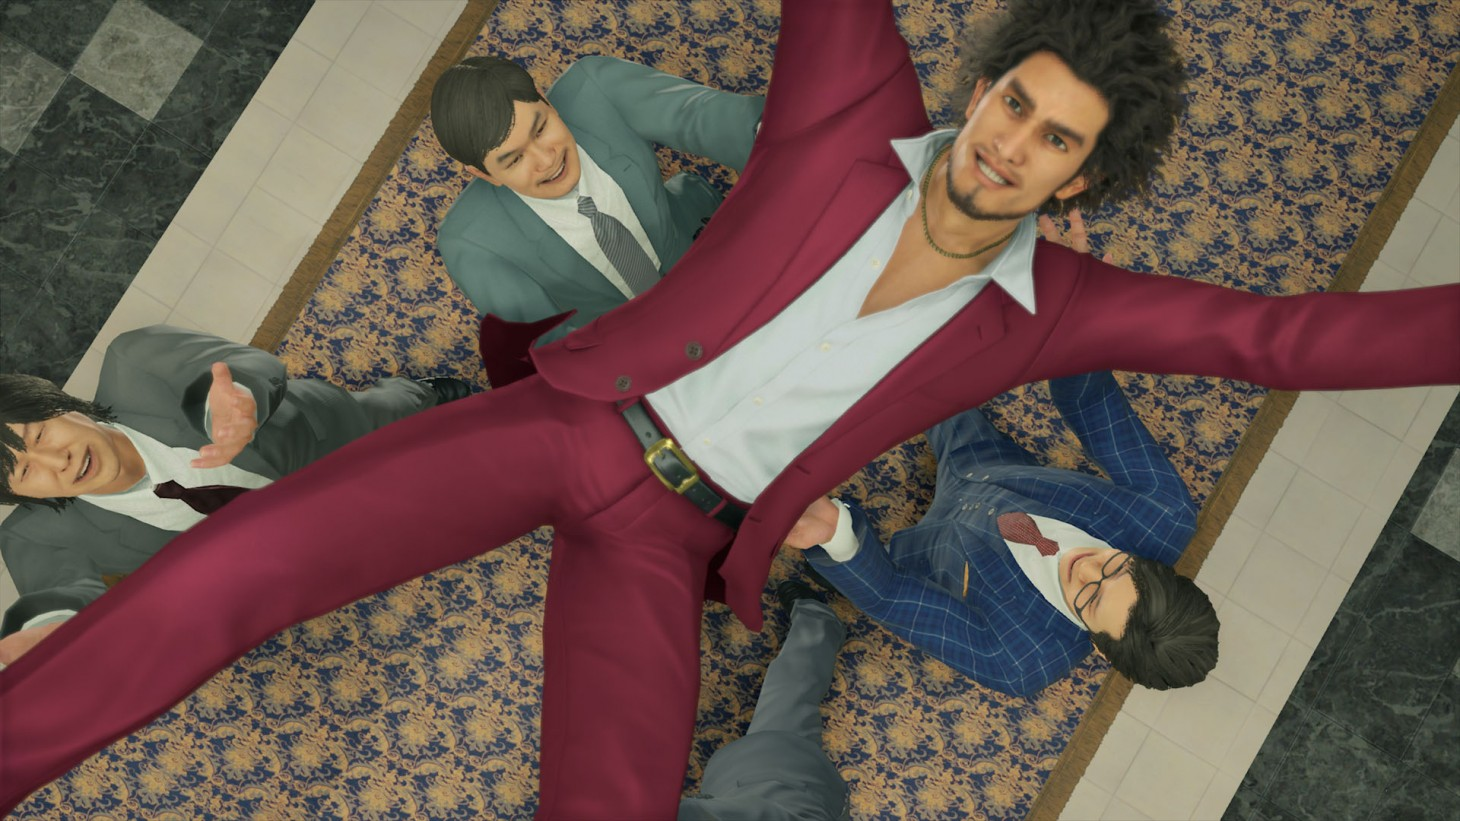 Yakuza: Like a Dragon. Ichiban Kasuga is lifted and tossed into the air in celebration of passing a college exam.